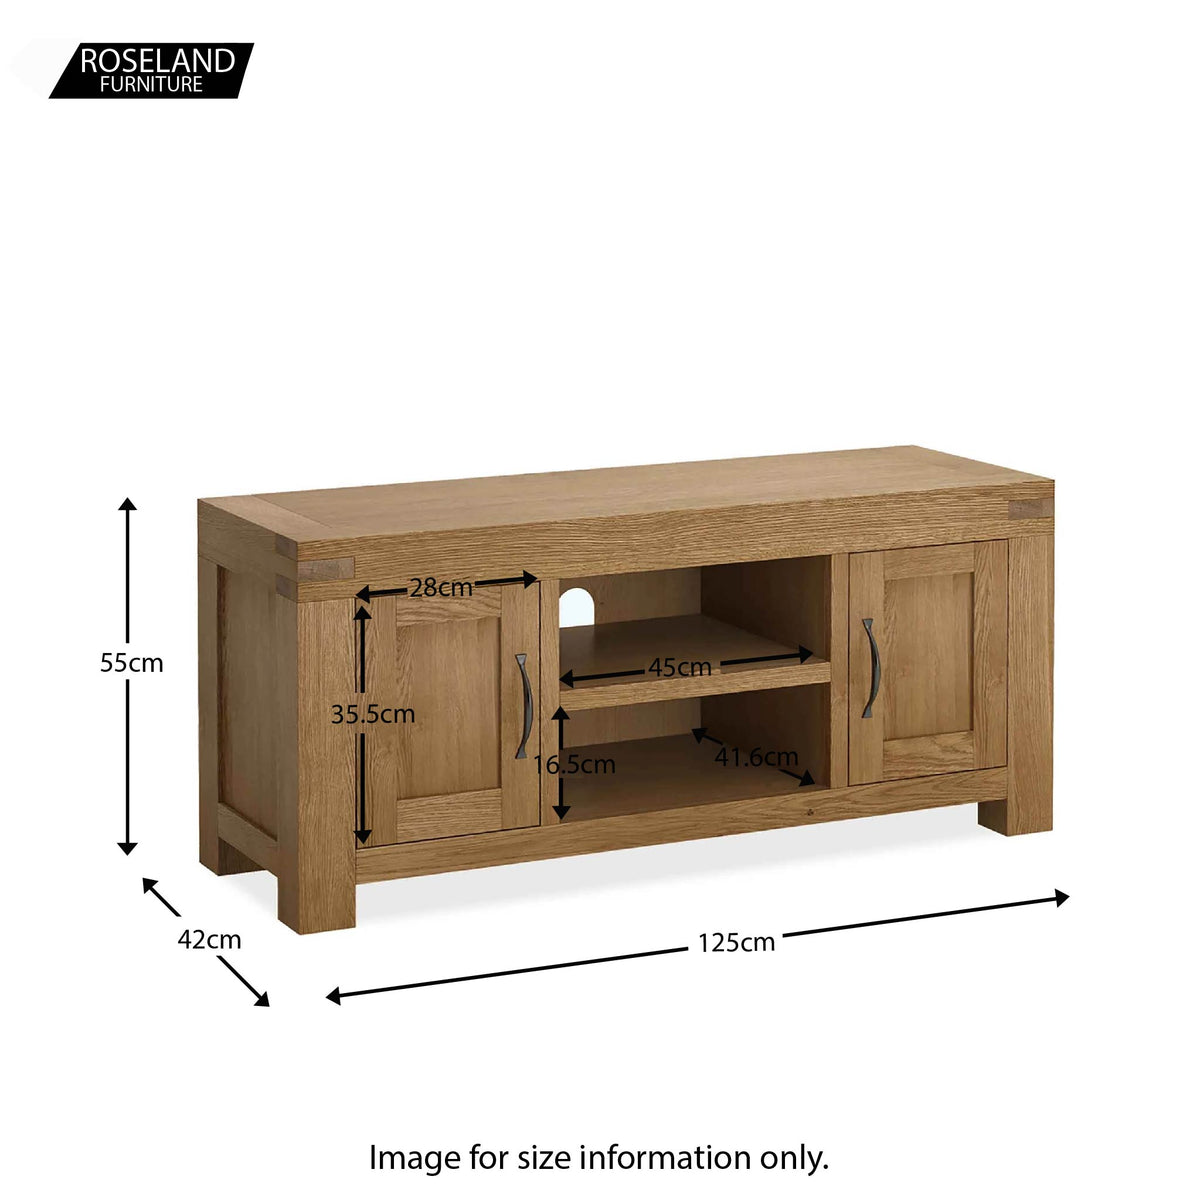 Abbey Grande 125cm Oak TV Stand - Size guide